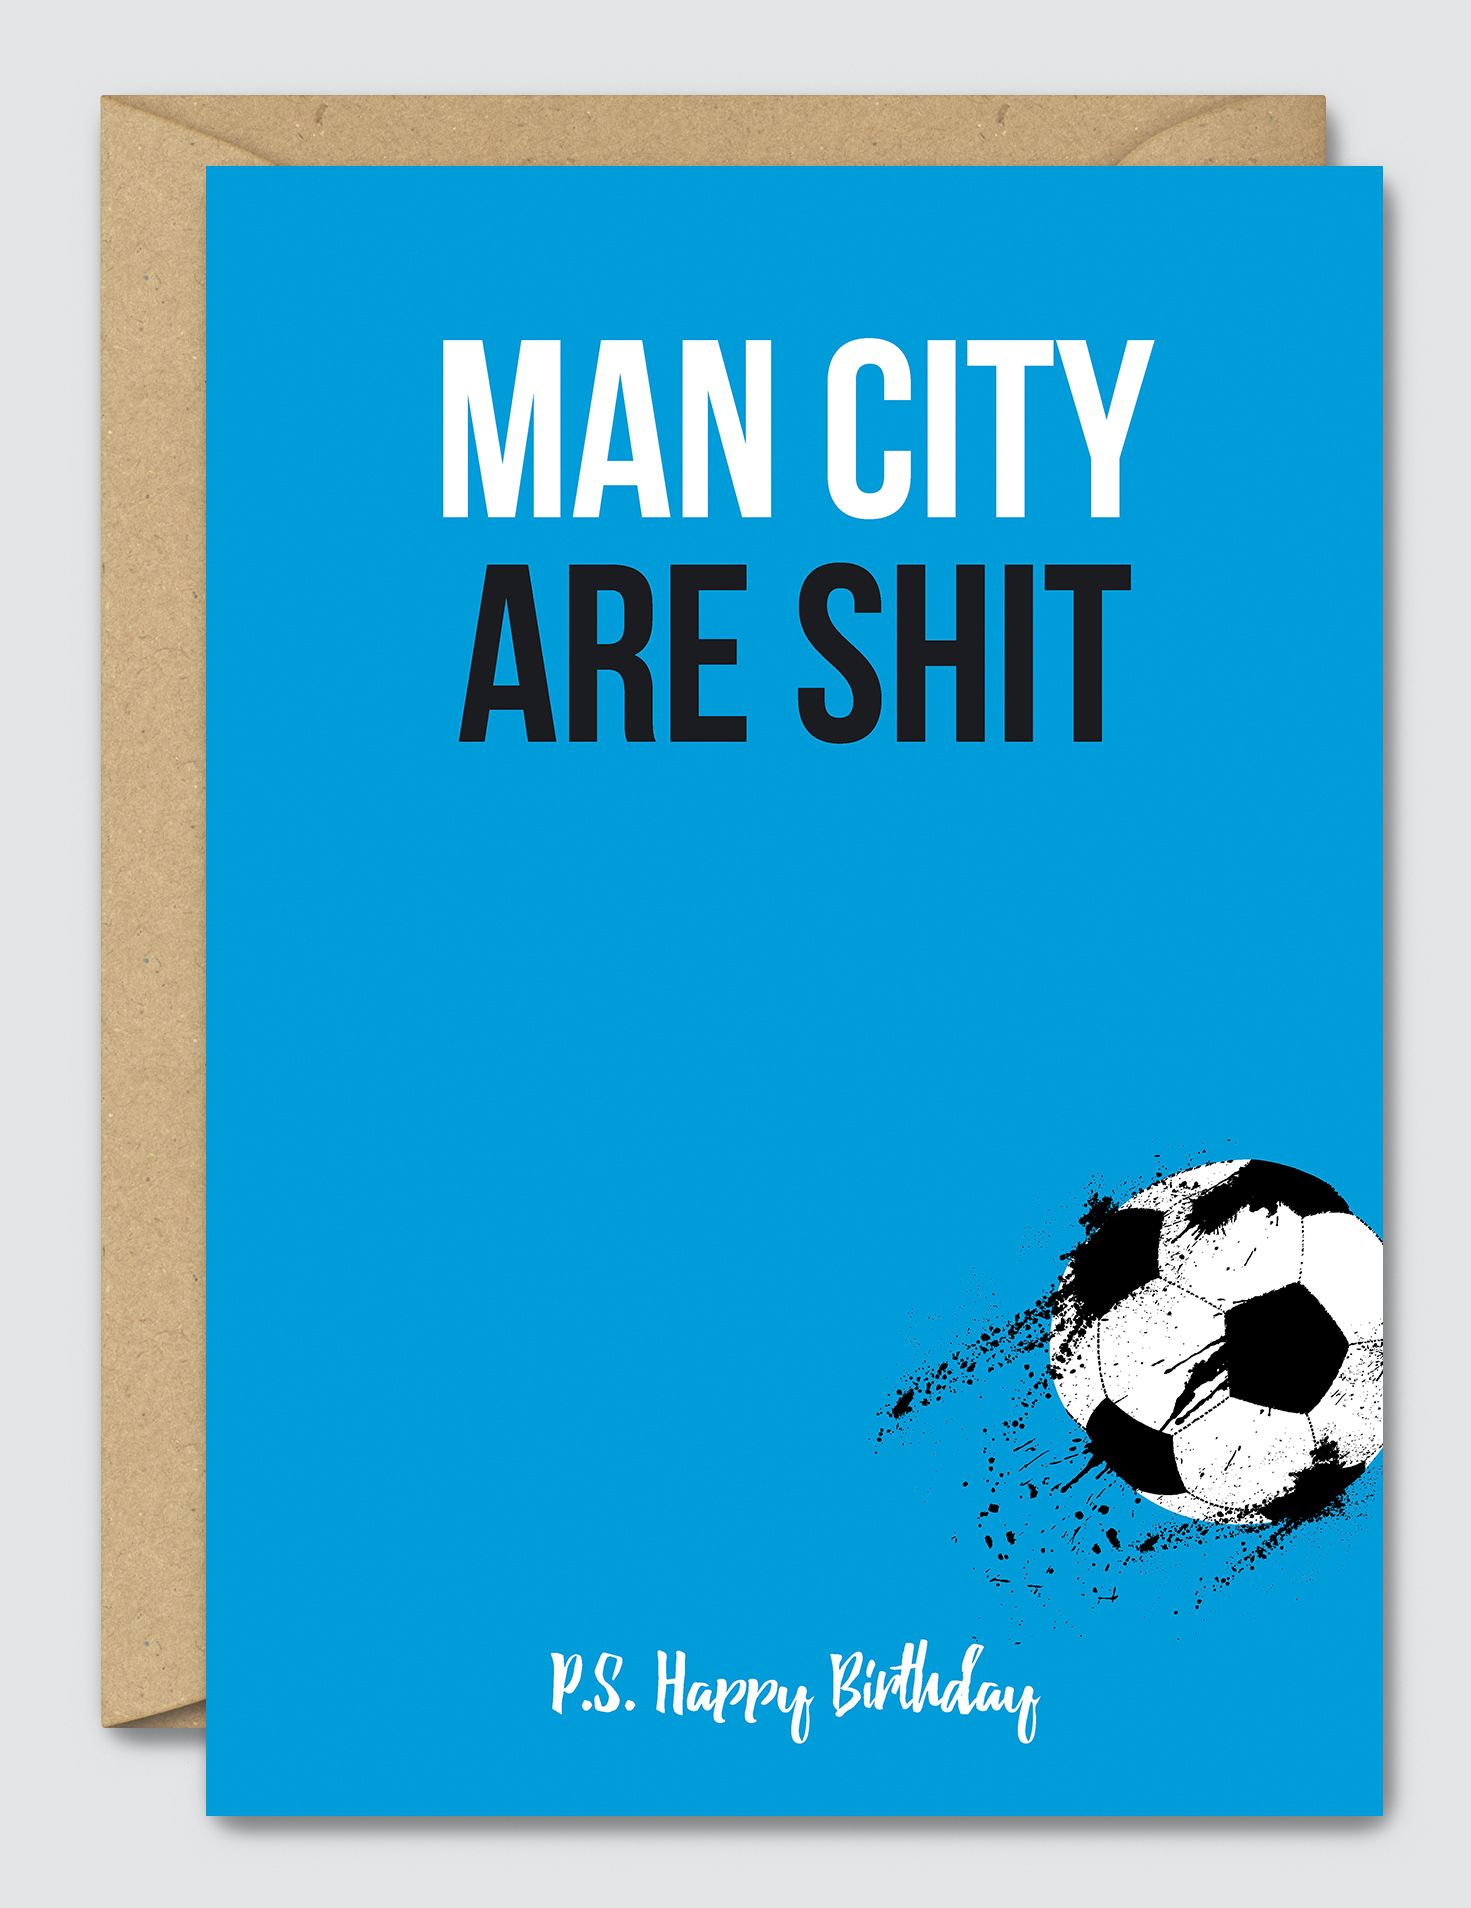 happy birthday for a man images ; Man-City-Are-Shit-Happy-Birthday